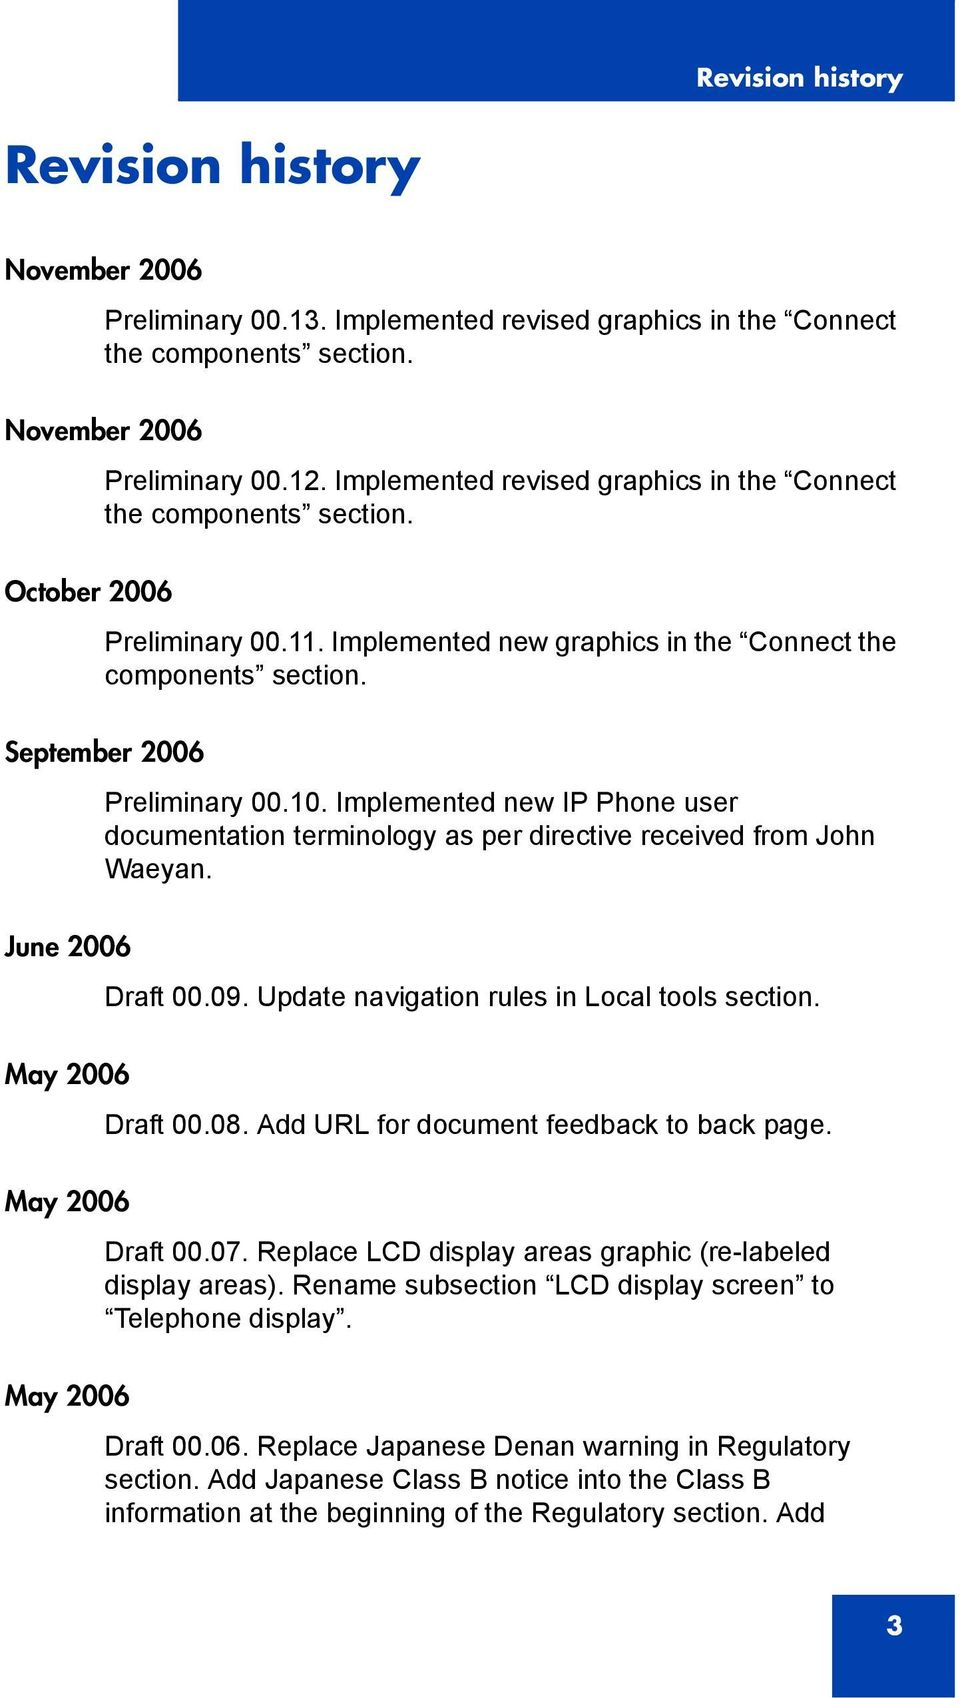 Implemented new IP Phone user documentation terminology as per directive received from John Waeyan. June 2006 Draft 00.09. Update navigation rules in Local tools section. May 2006 Draft 00.08.